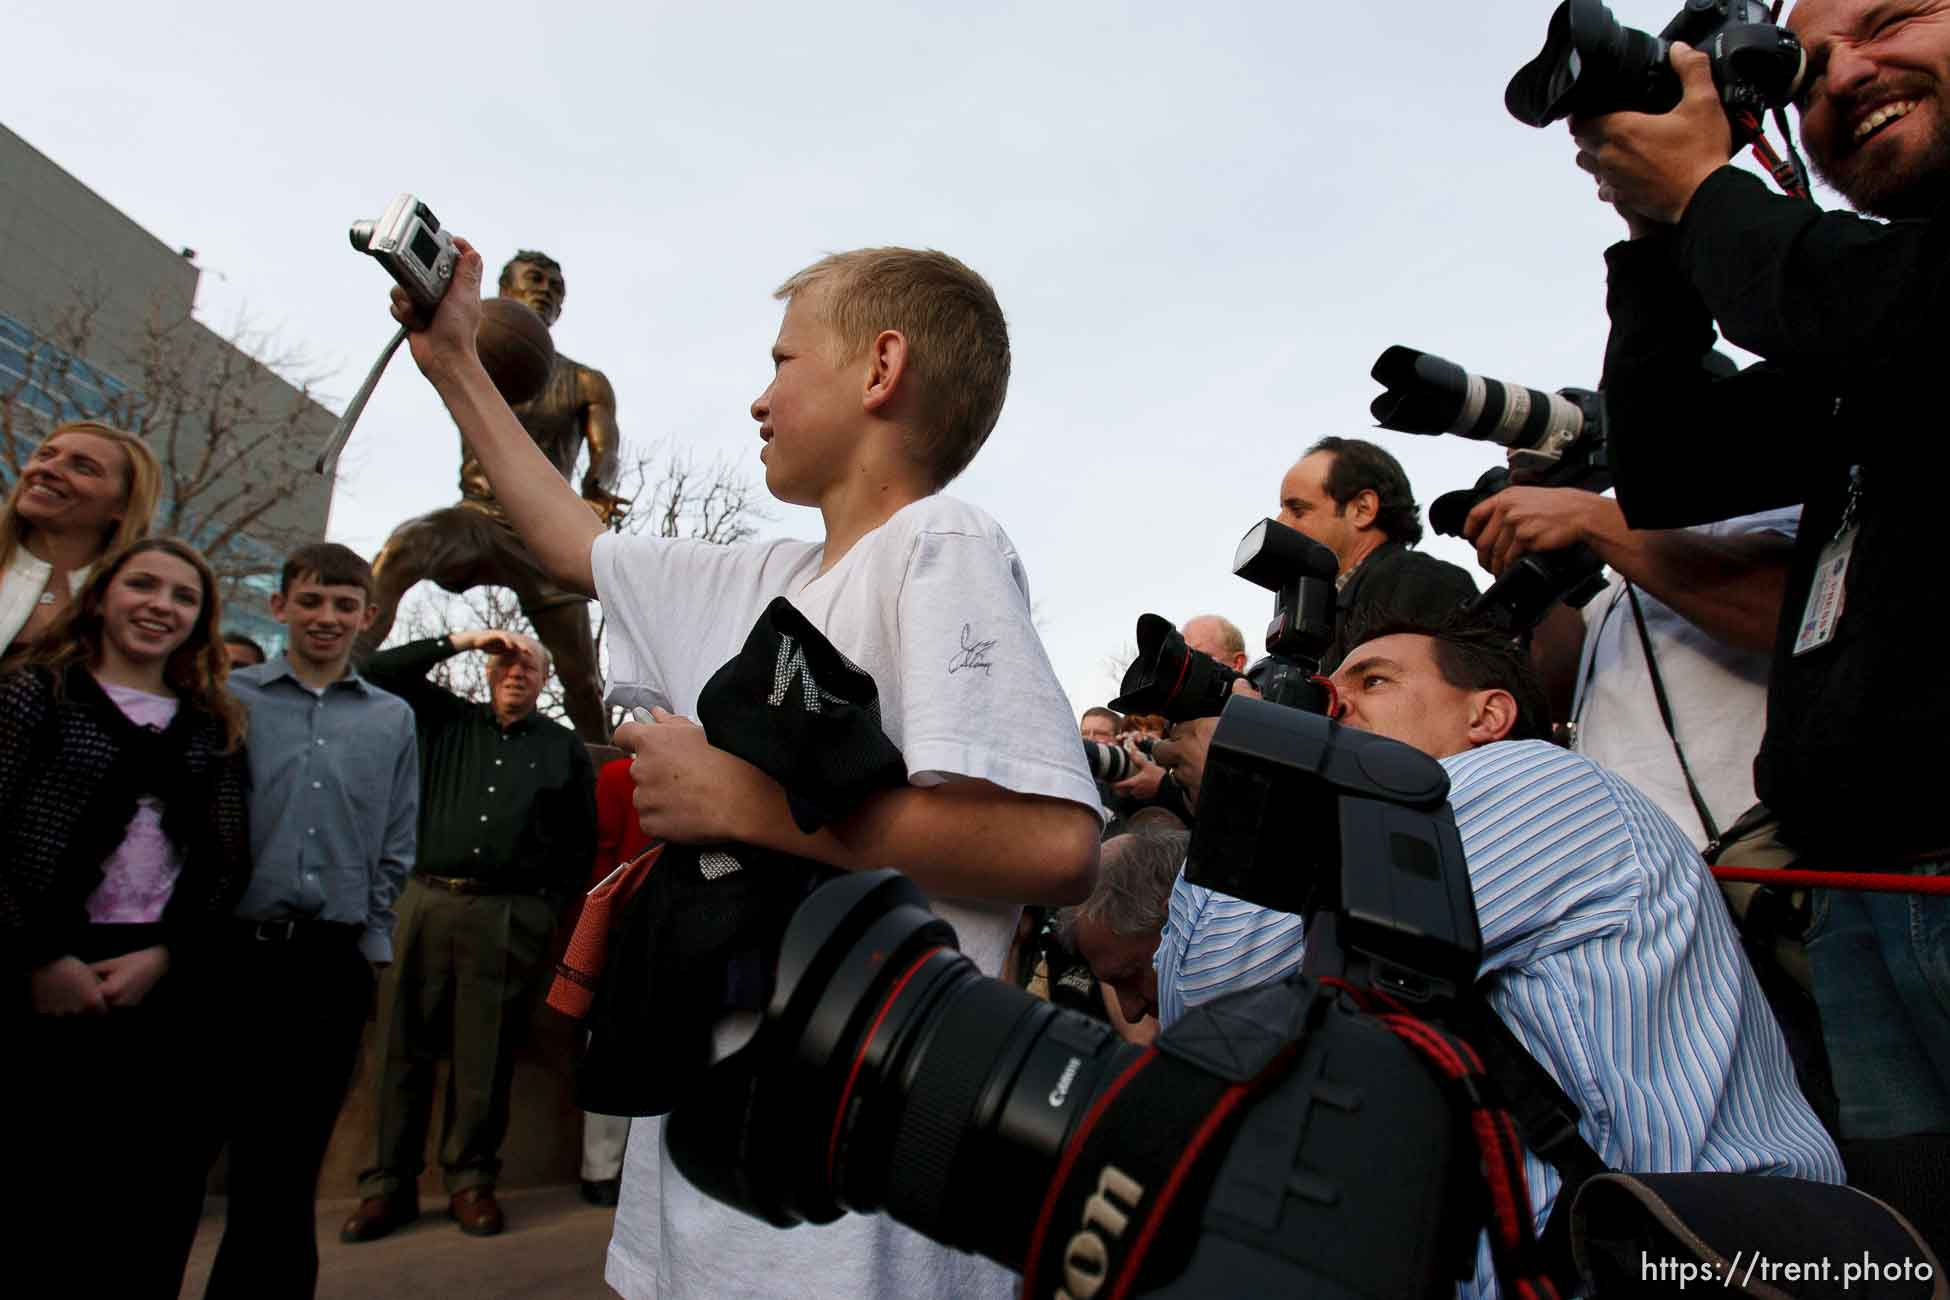 kid among photographers. Karl Malone statue ceremony at the Delta Center. 3.23.2006